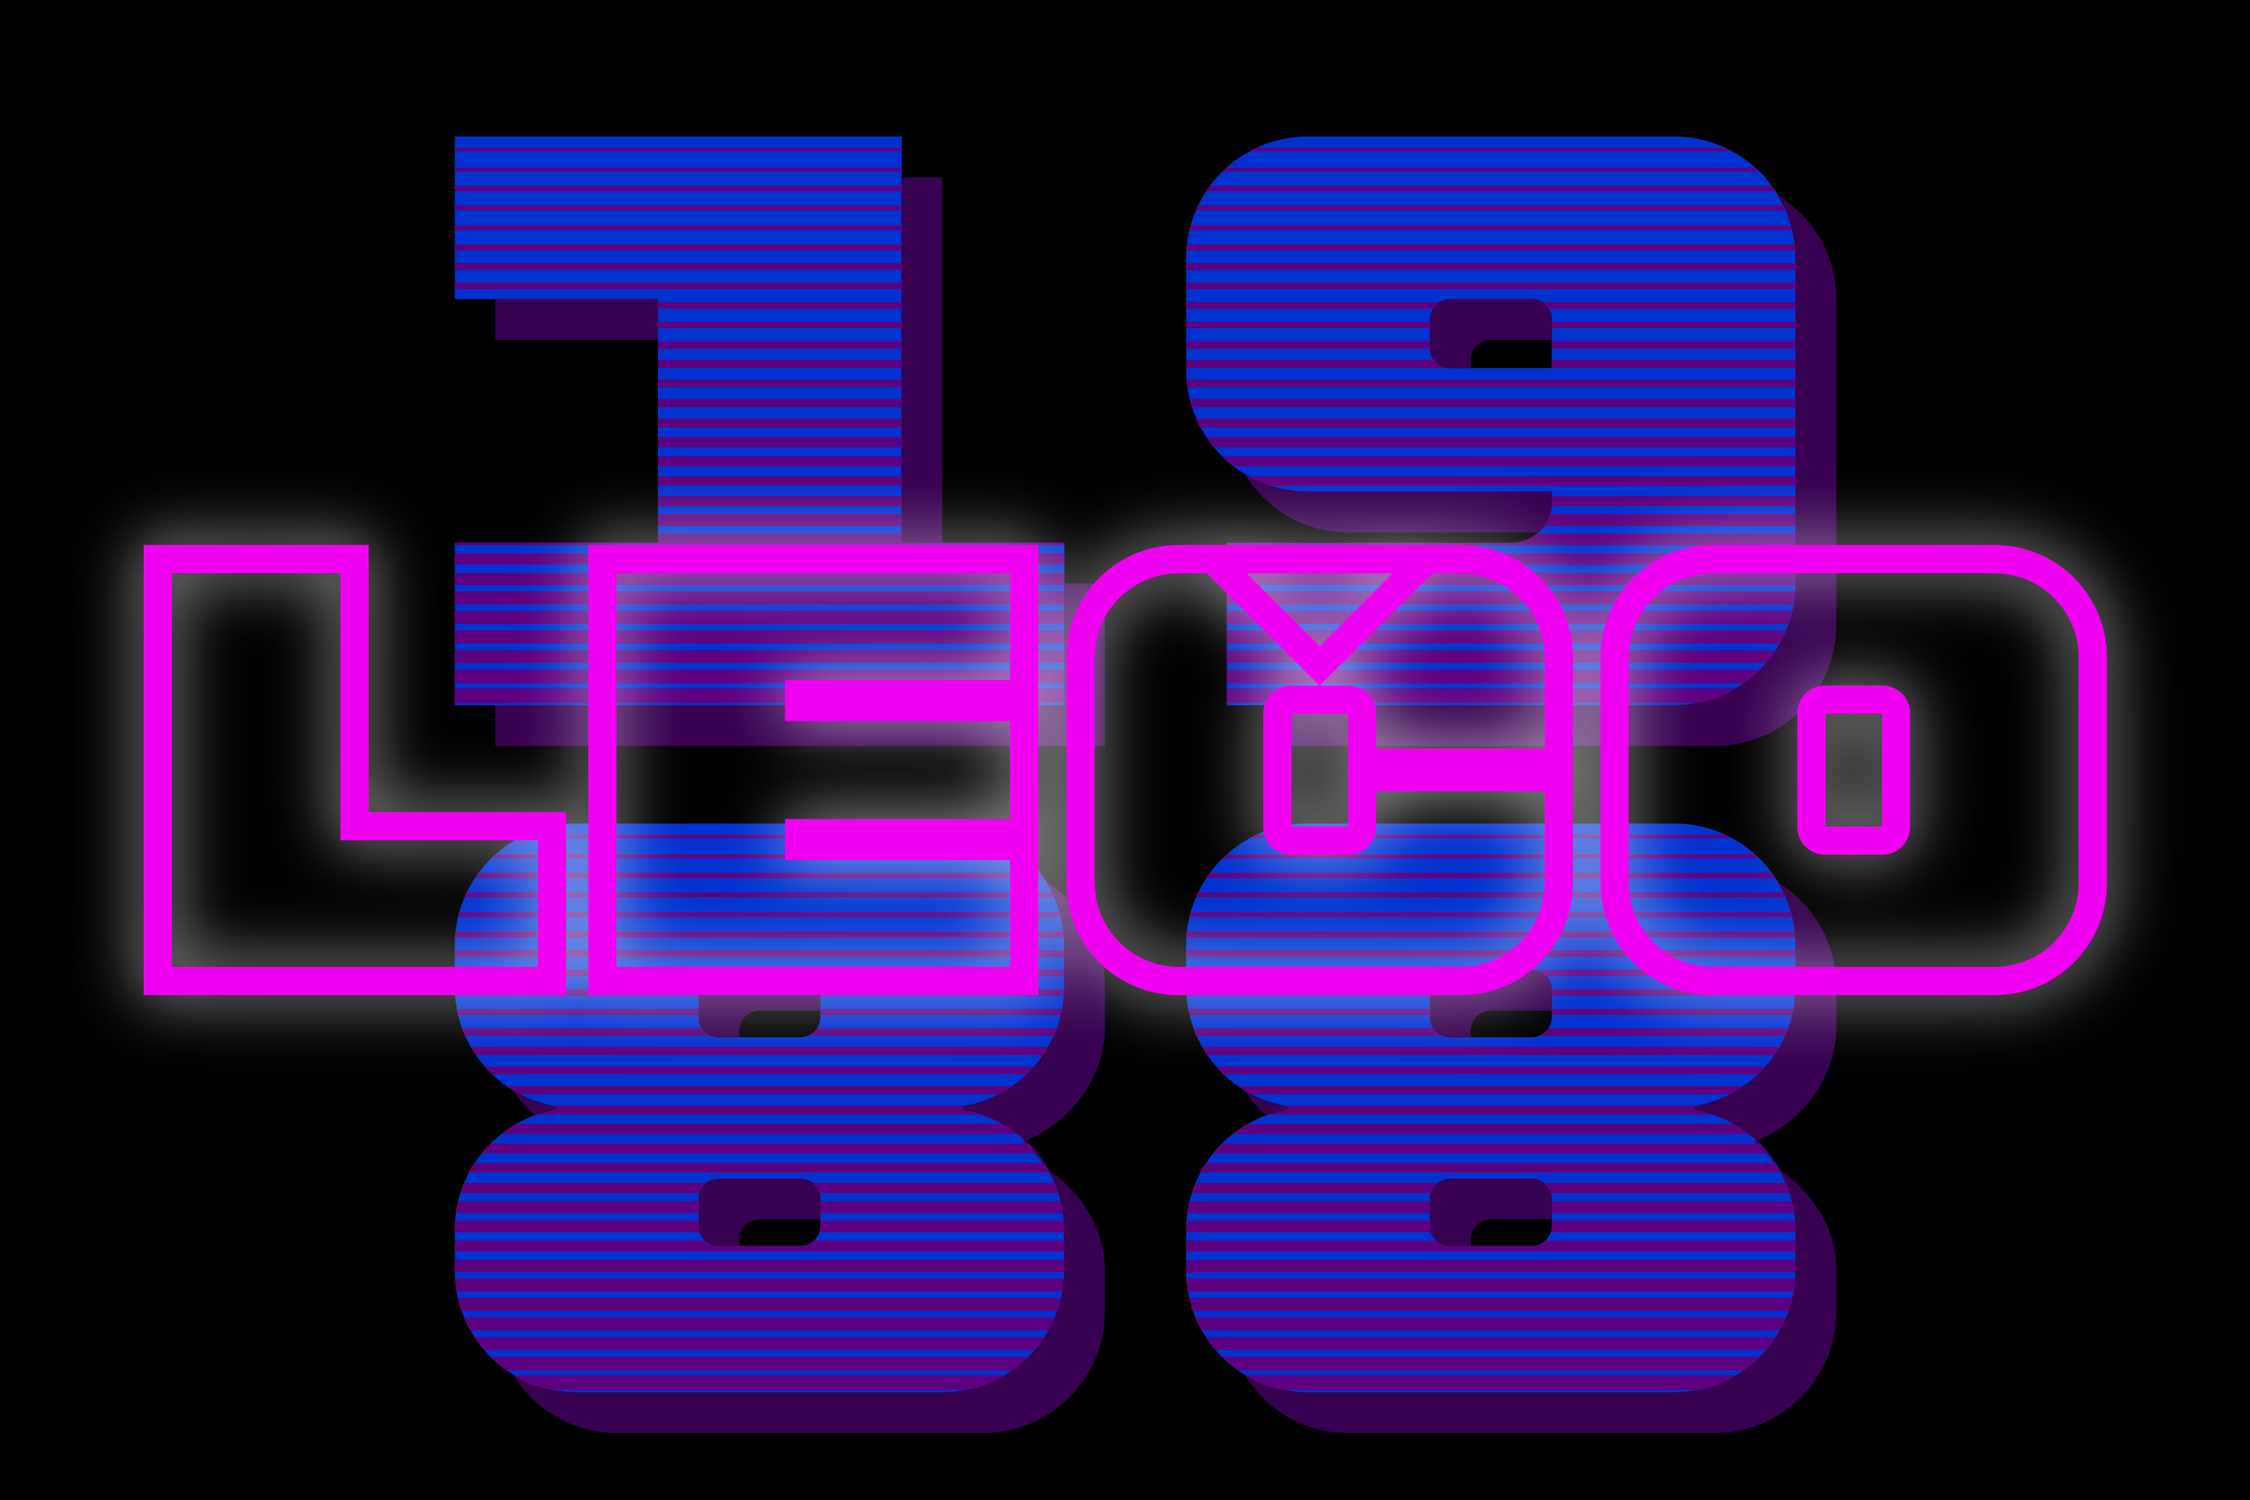 LECO1988-01.png